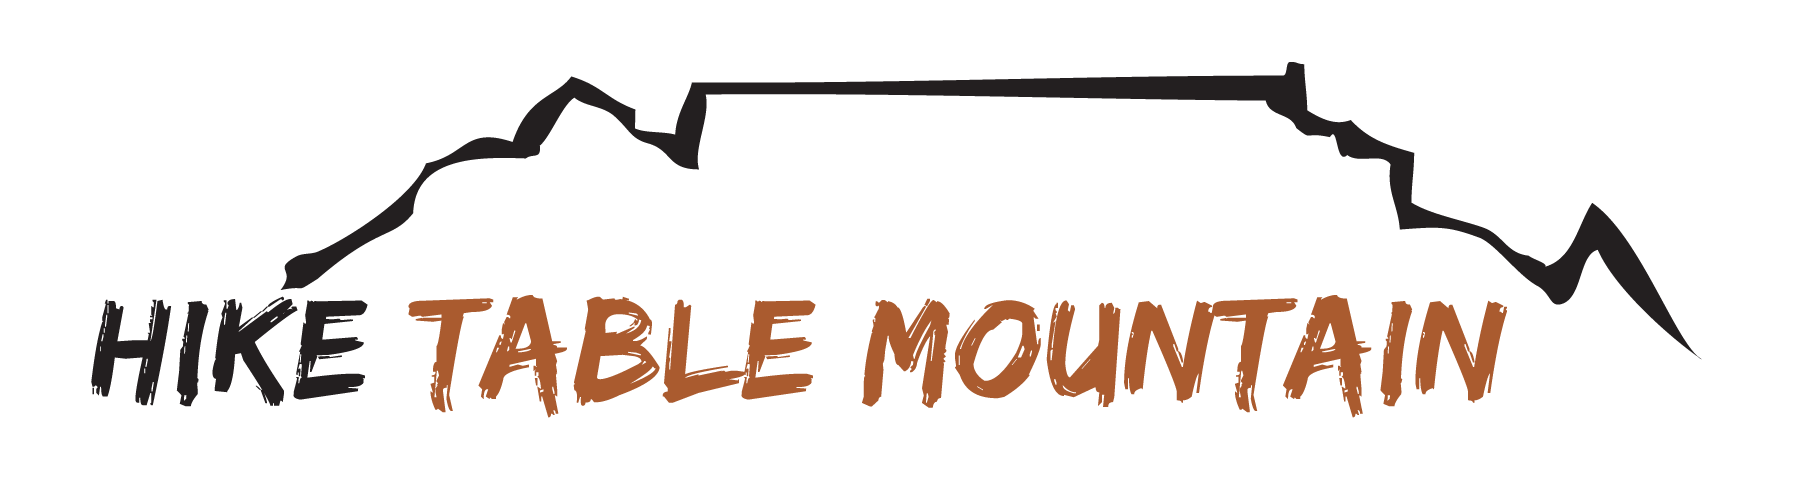 Trail clipart summit mountain.  collection of table